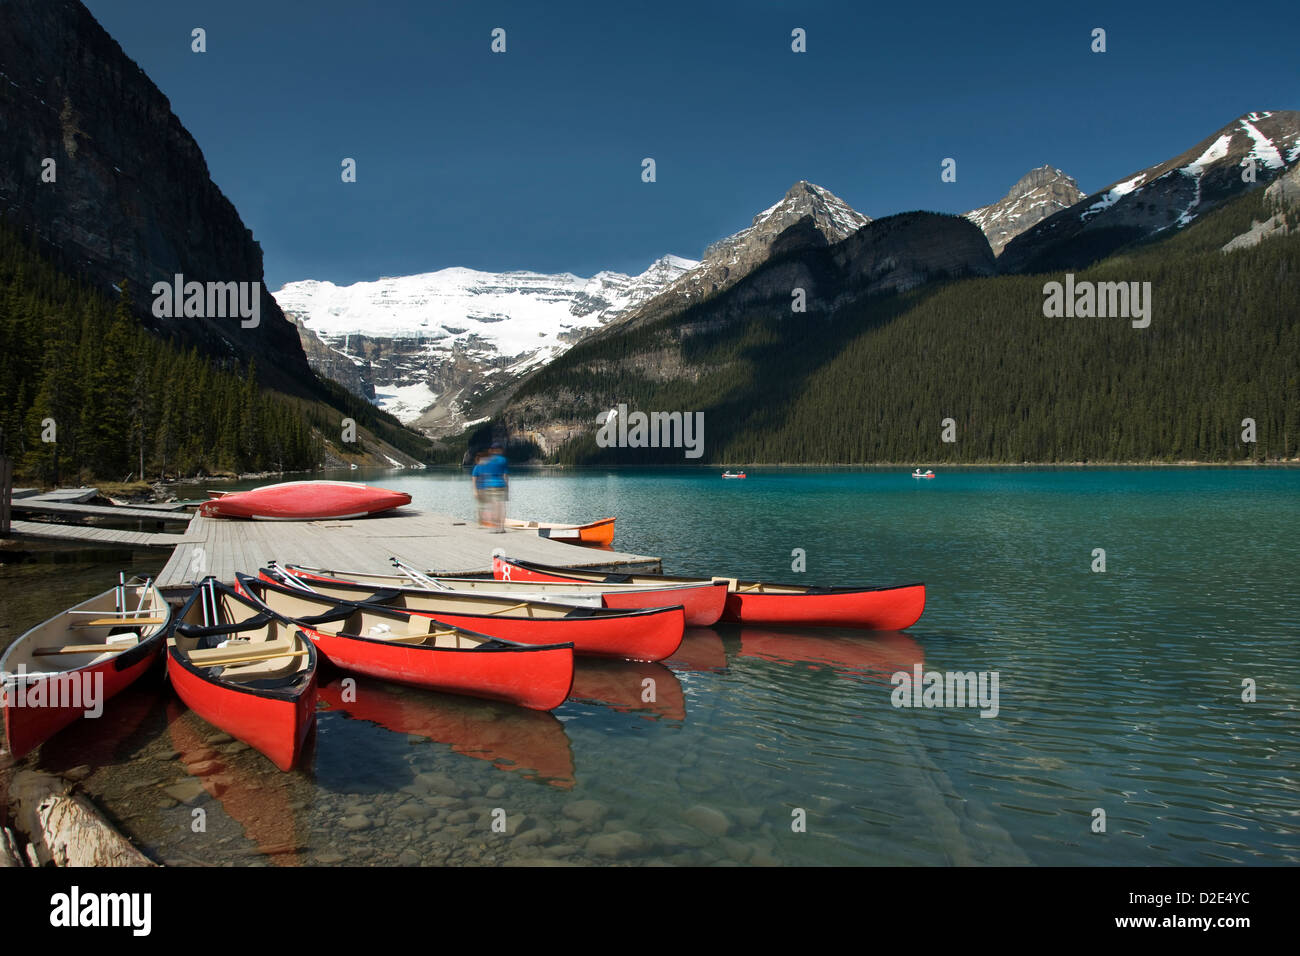 Quai des CANOTS RED LAKE LOUISE GLACIER VICTORIA Mont VICTORIA BANFF NATIONAL PARK ALBERTA CANADA Photo Stock